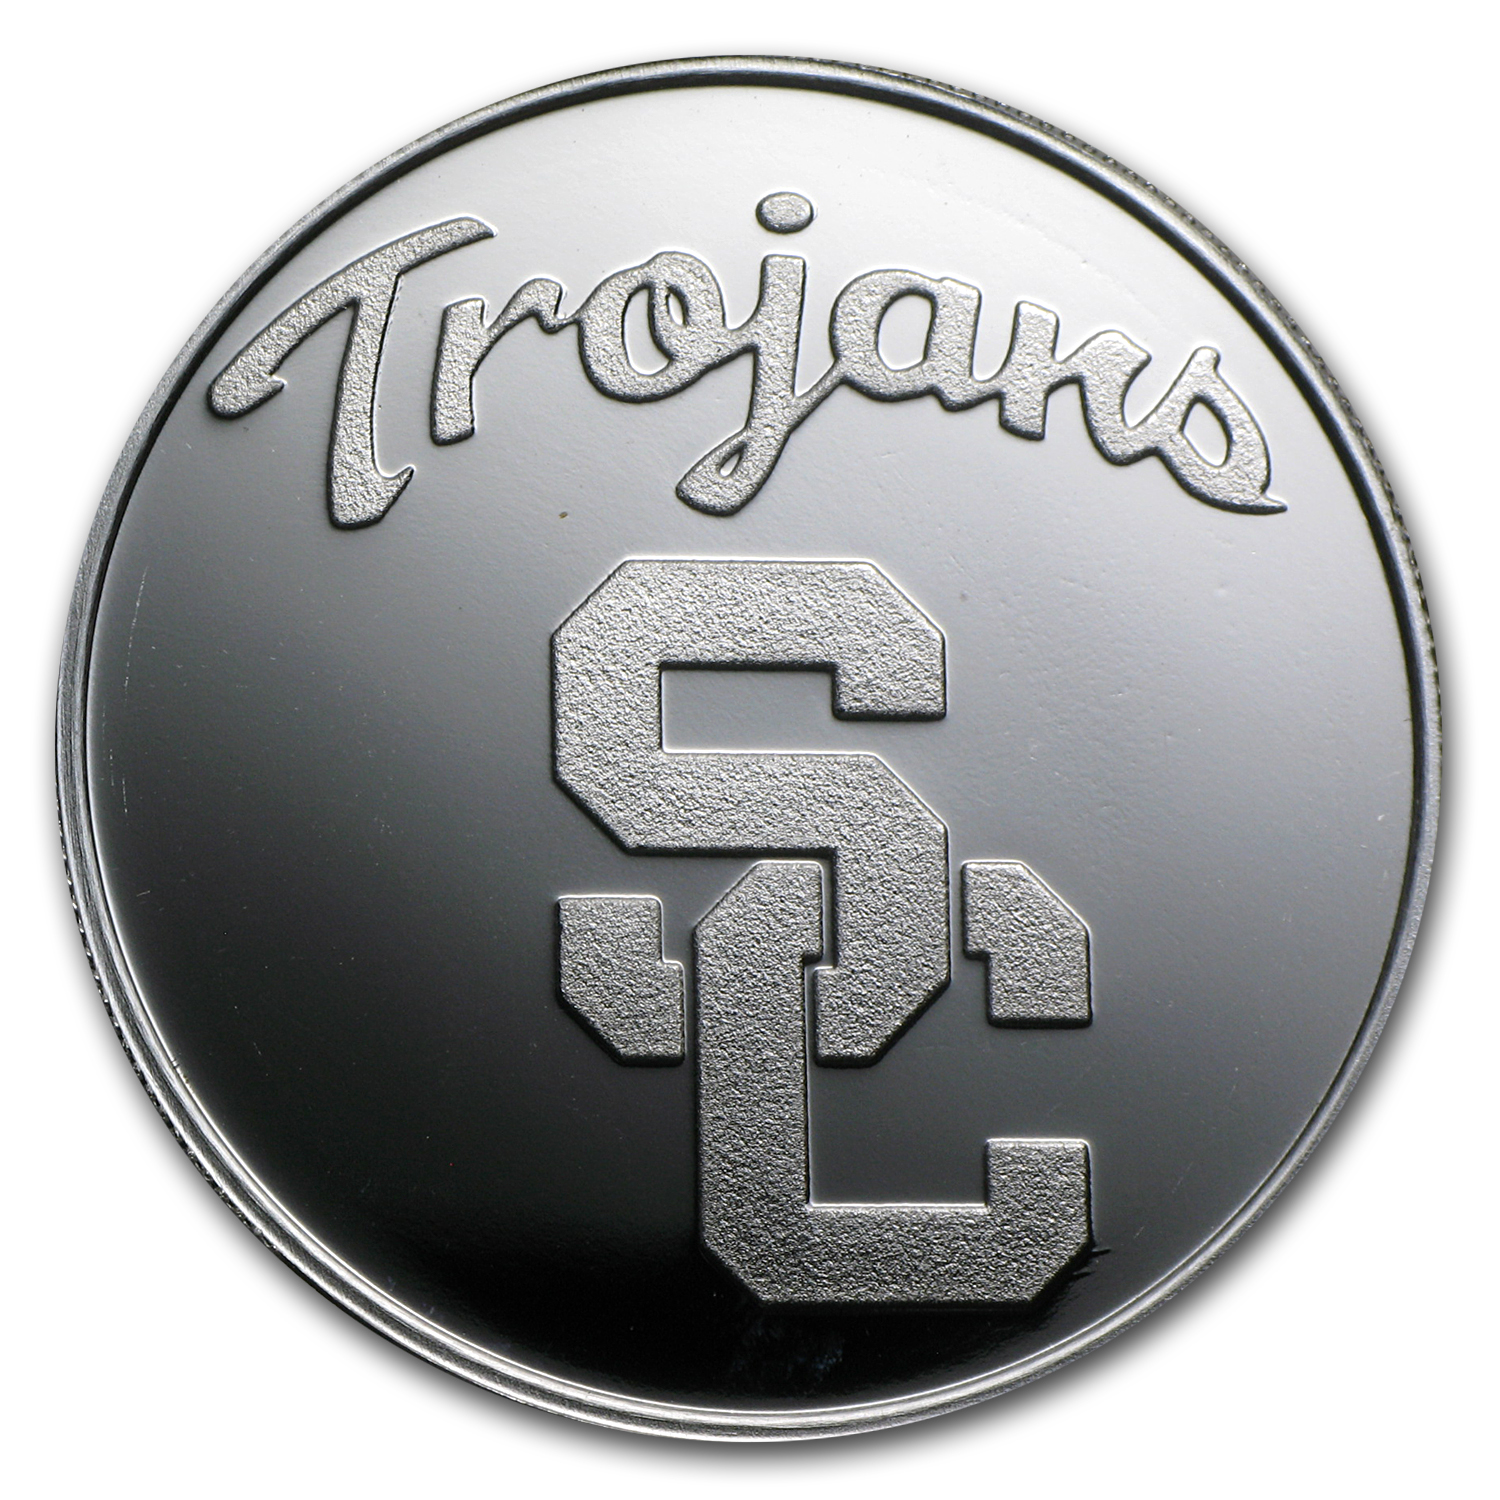 1 oz Silver Round - University of Southern California